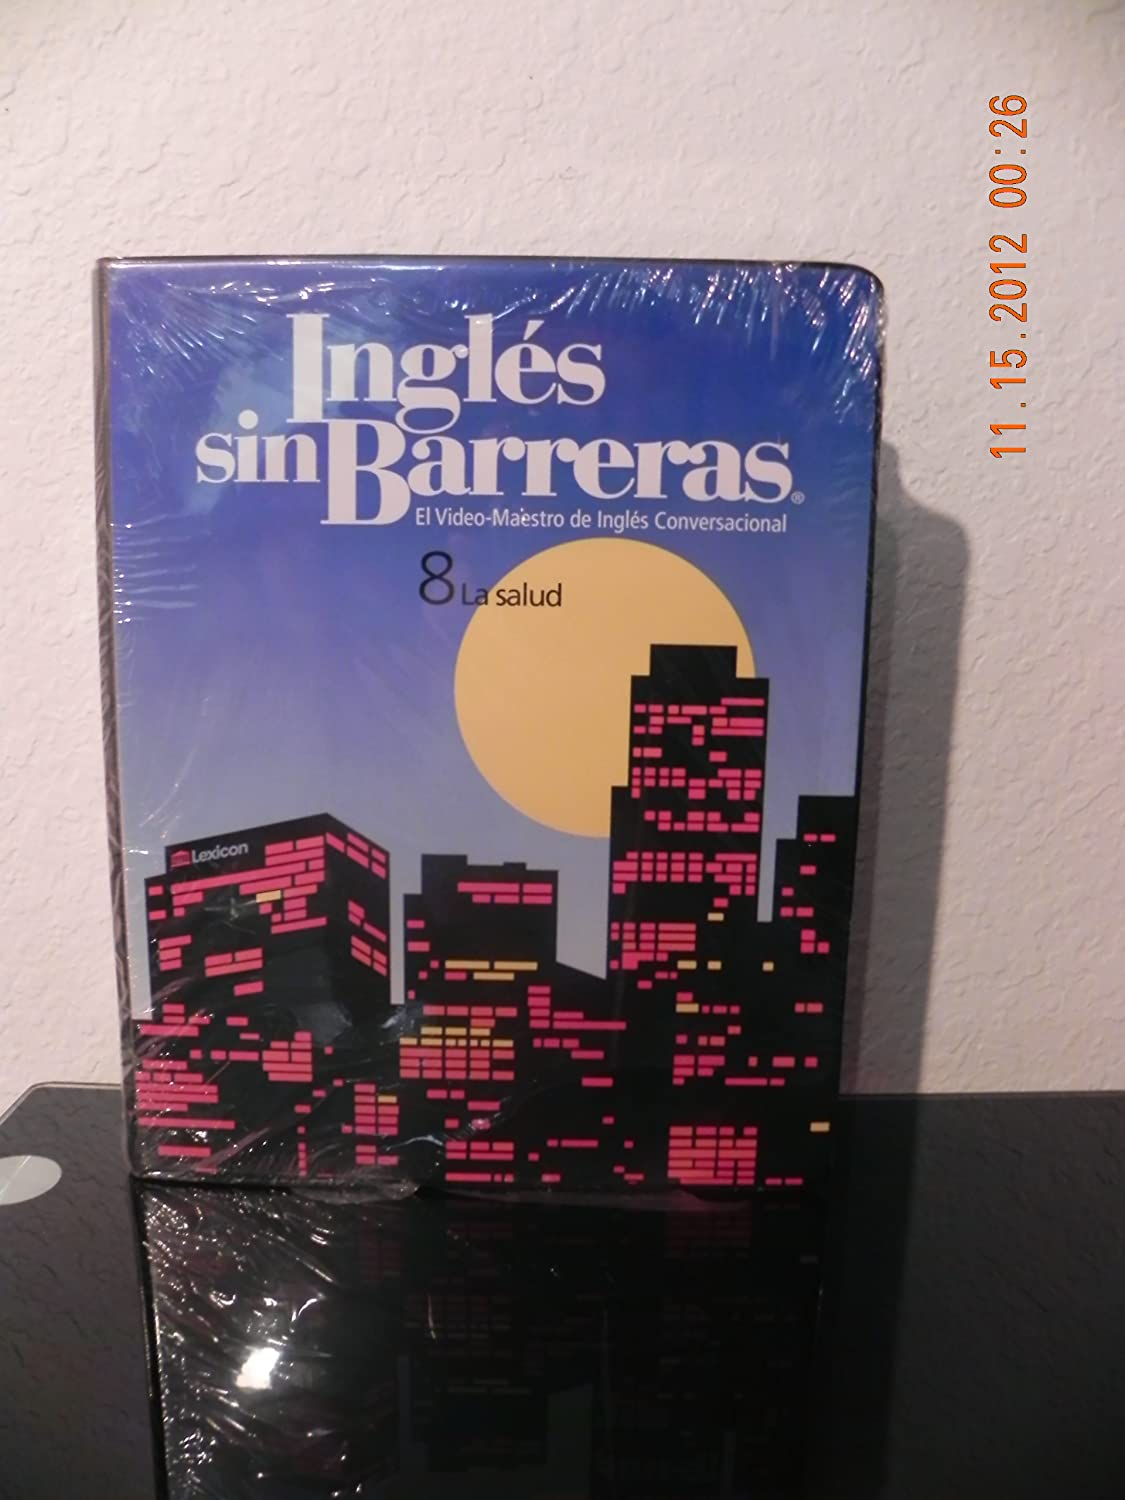 Amazon.com: Ingles Sin Barreras (Complete Set of 12-- Manuals, DVDs, CDs, Book): Health & Personal Care